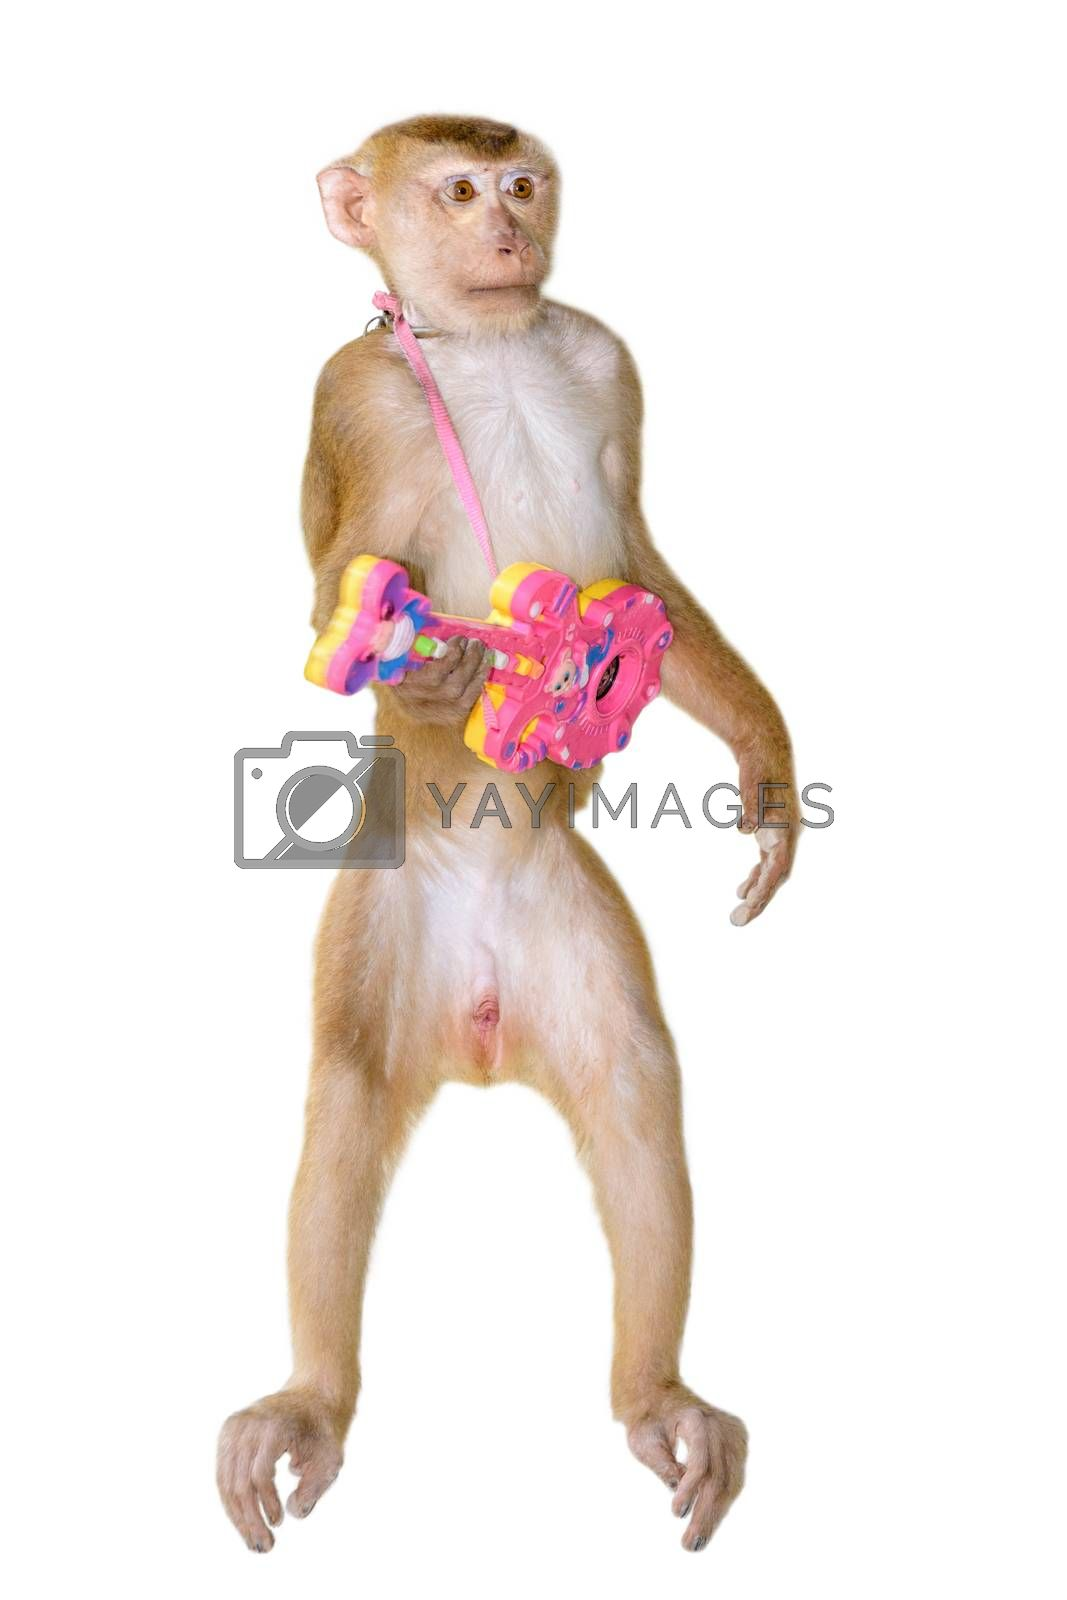 Macaque monkey standing hold toy guitar made of plastic with funny gesture on isolated white background